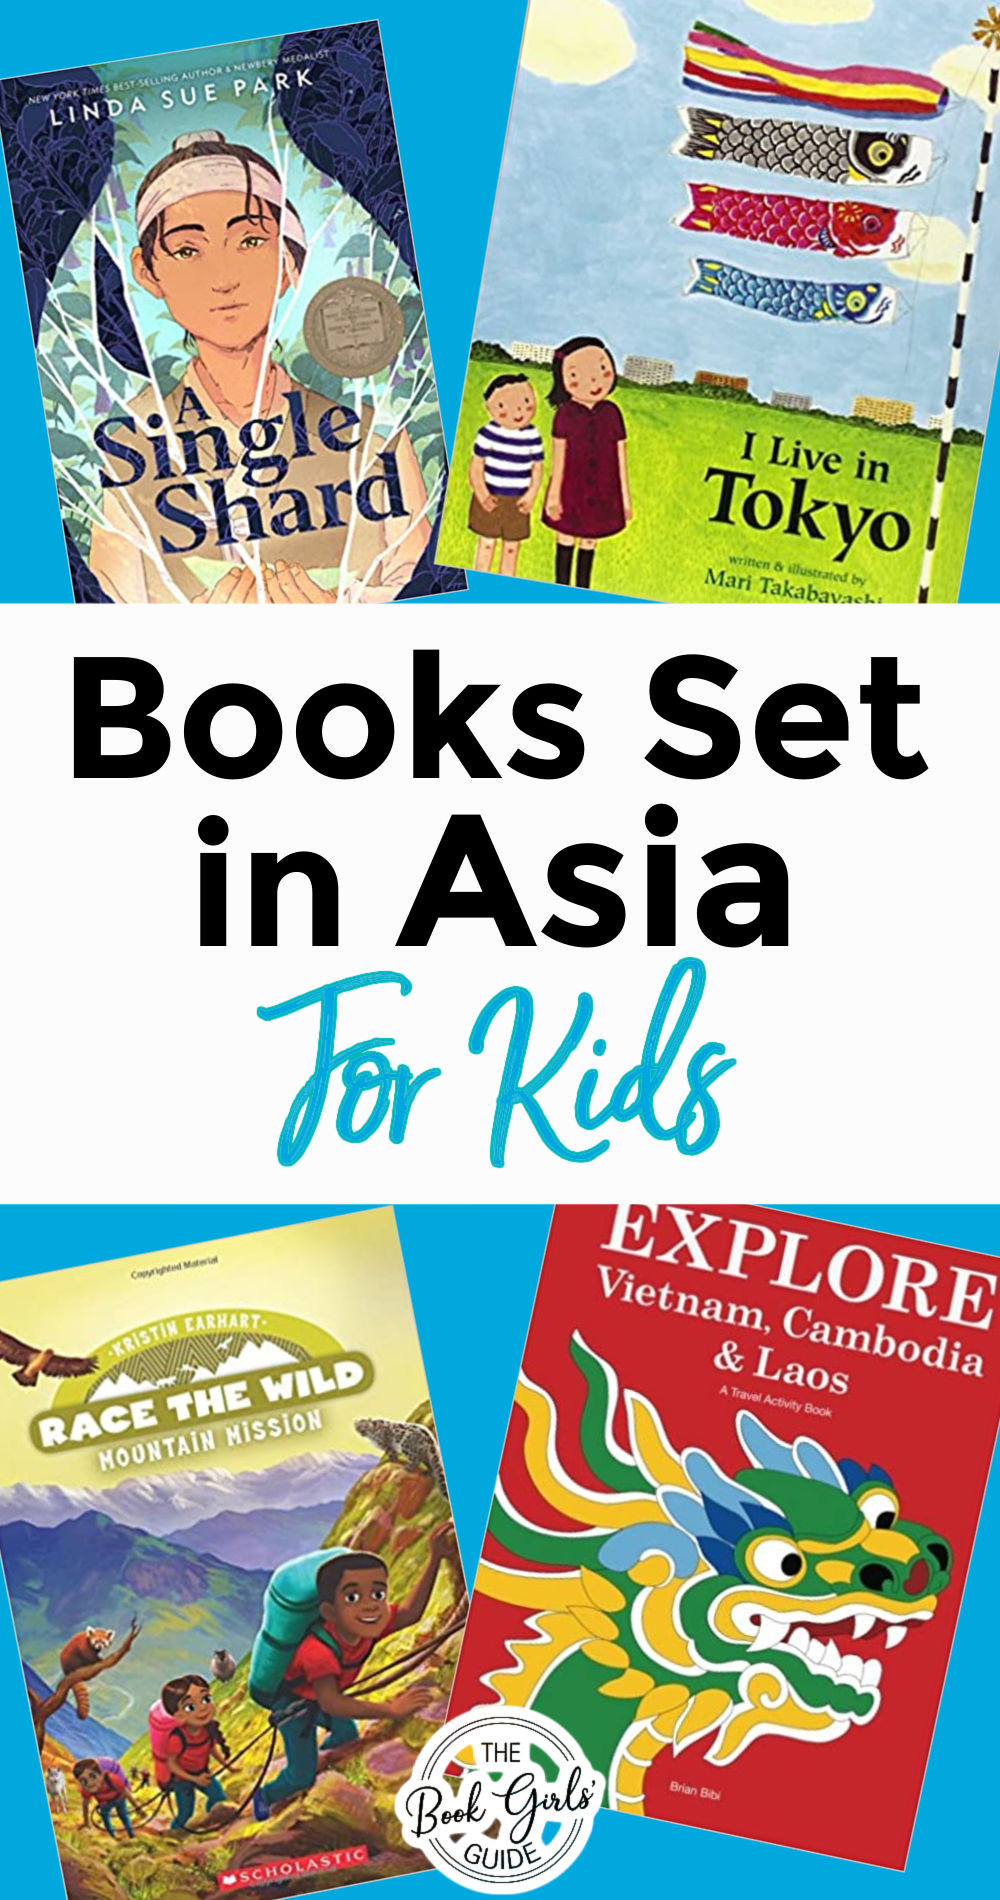 Books Set in Asia for Kids